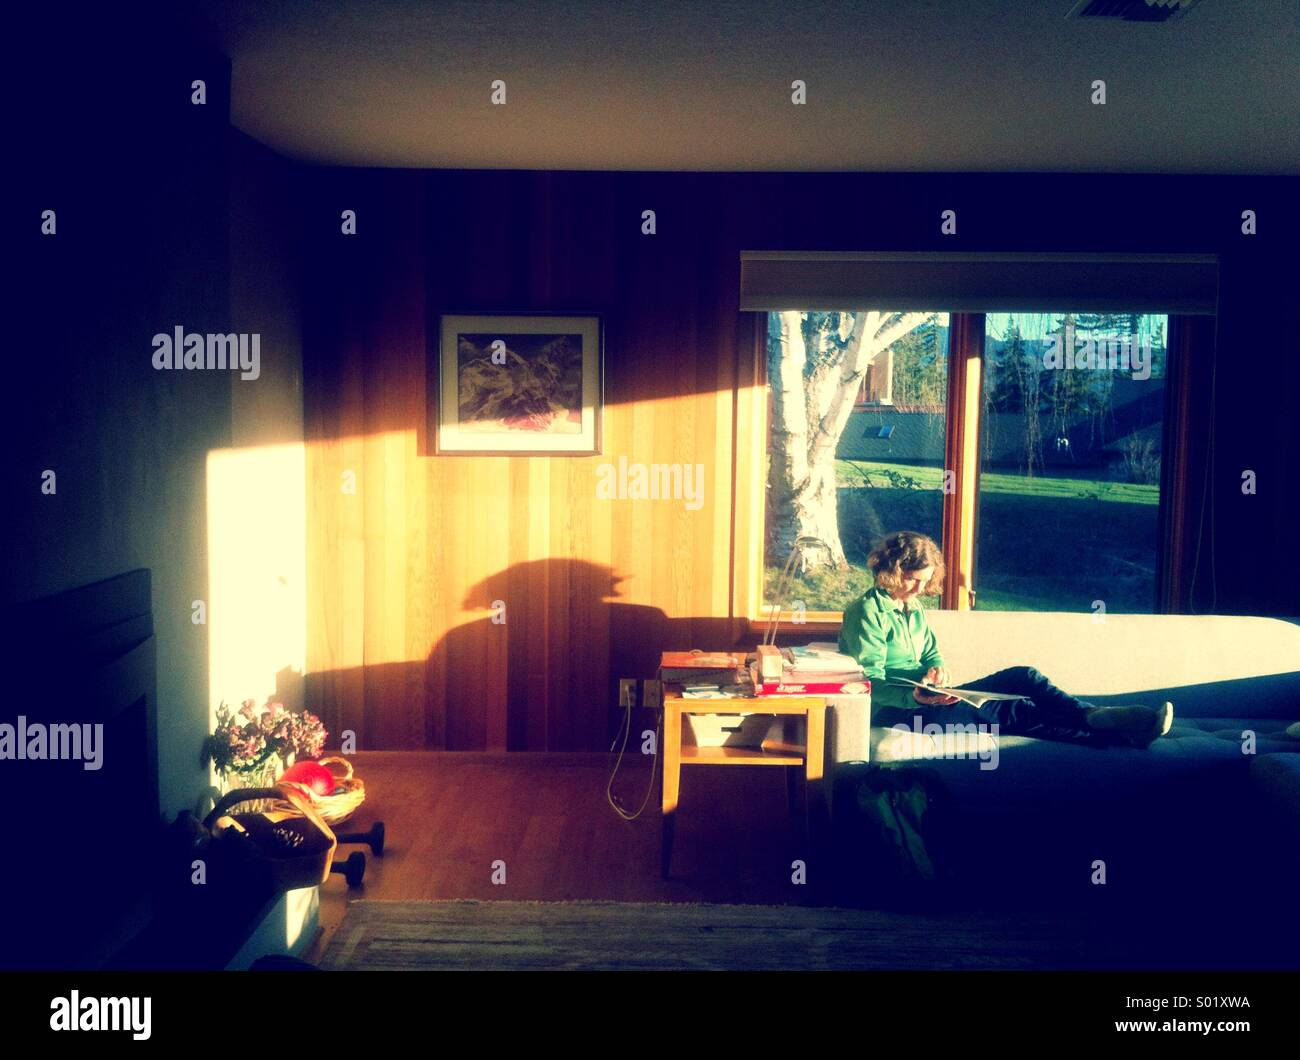 Woman reading on couch Photo Stock